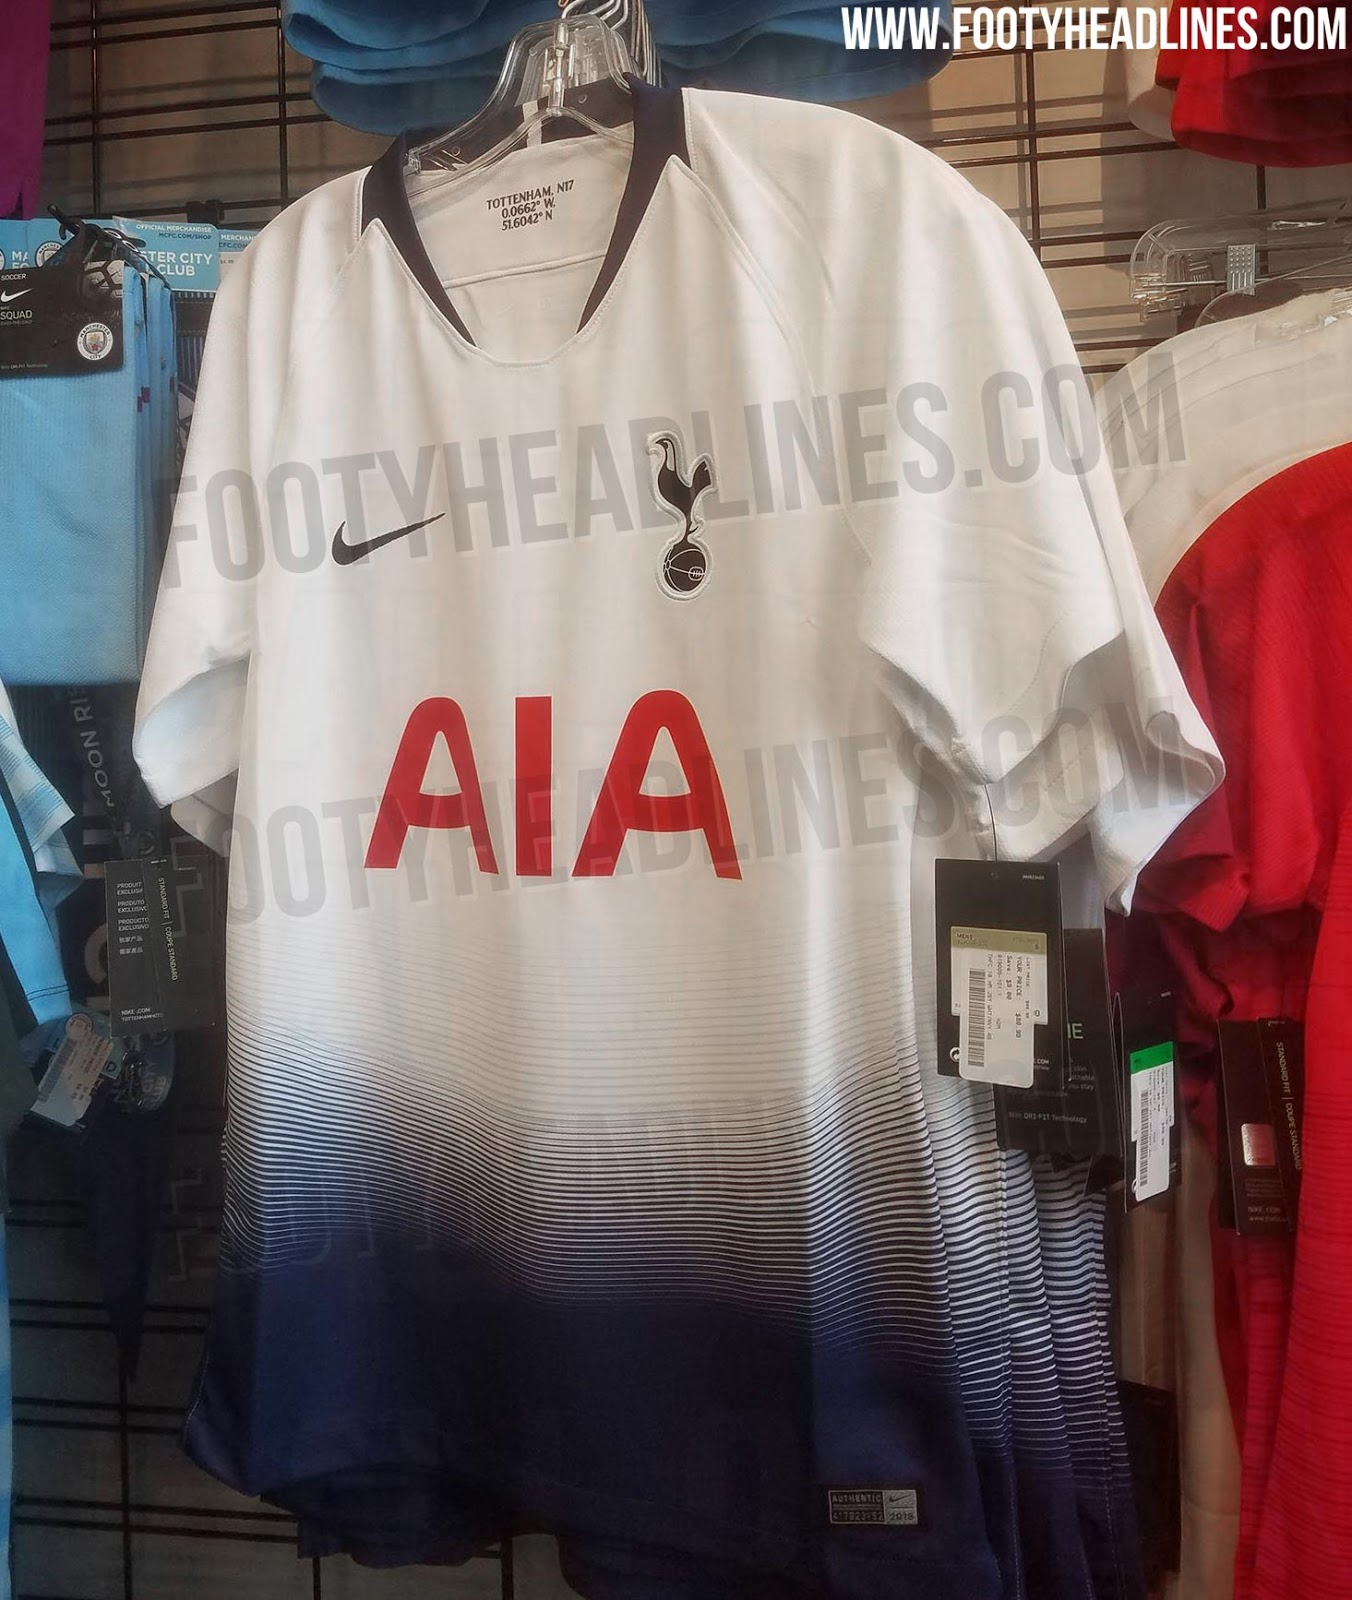 1332aaff Made by Nike in the brand's second year with the club and once again  sponsored by AIA, the Tottenham Hotspur 2018-19 home jersey is set to be  launched in ...